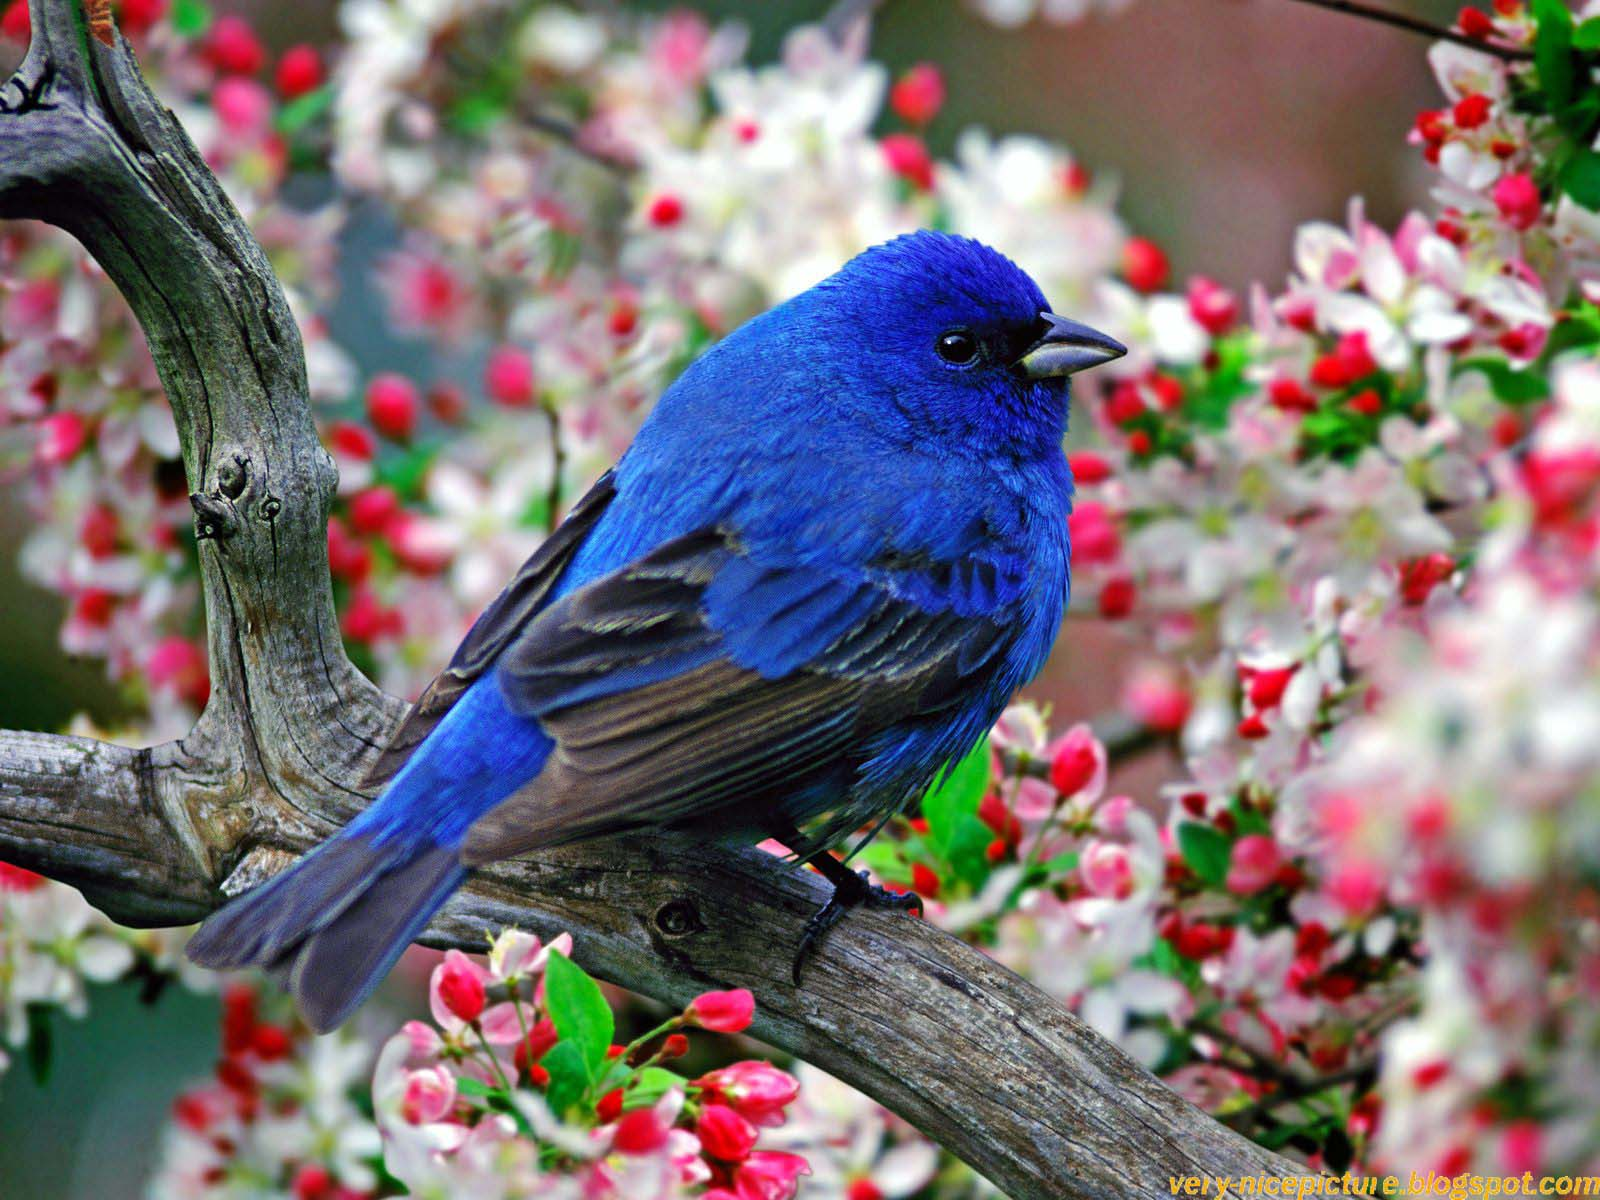 Beautiful nature wallpaper - Wallpapers Beautiful Birds Birds Wallpapers Natural Wallpapers